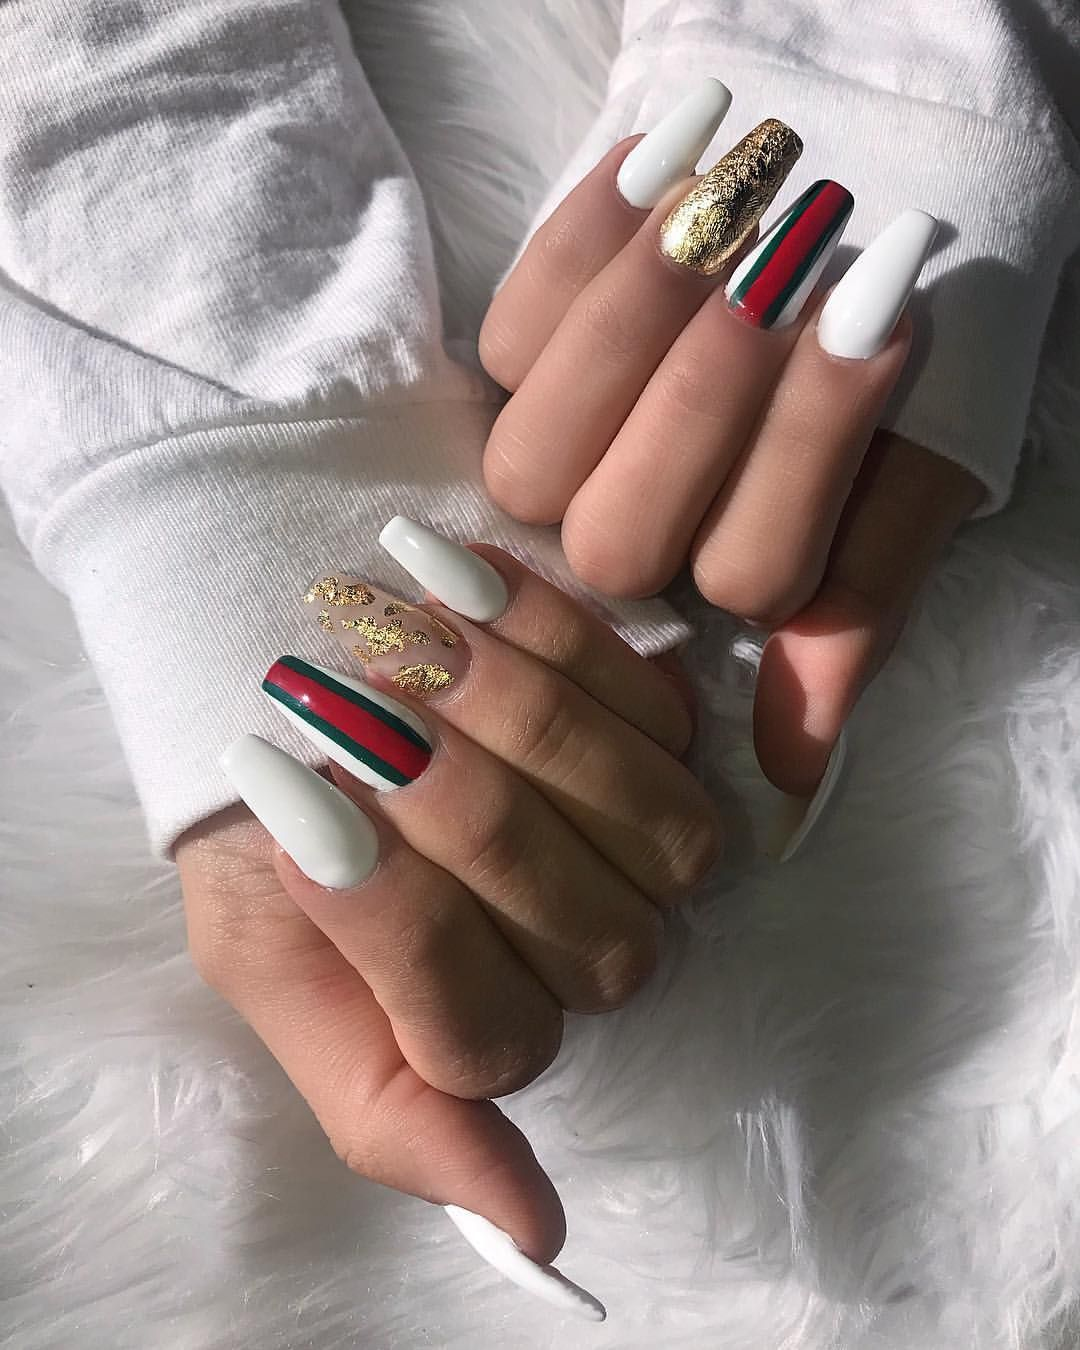 3 625 Likes 67 Comments Janelle Mughannam Cocojanelle On Instagram When You Can T Afford Anything Gucci So Yo Gucci Nails How To Do Nails Trendy Nails